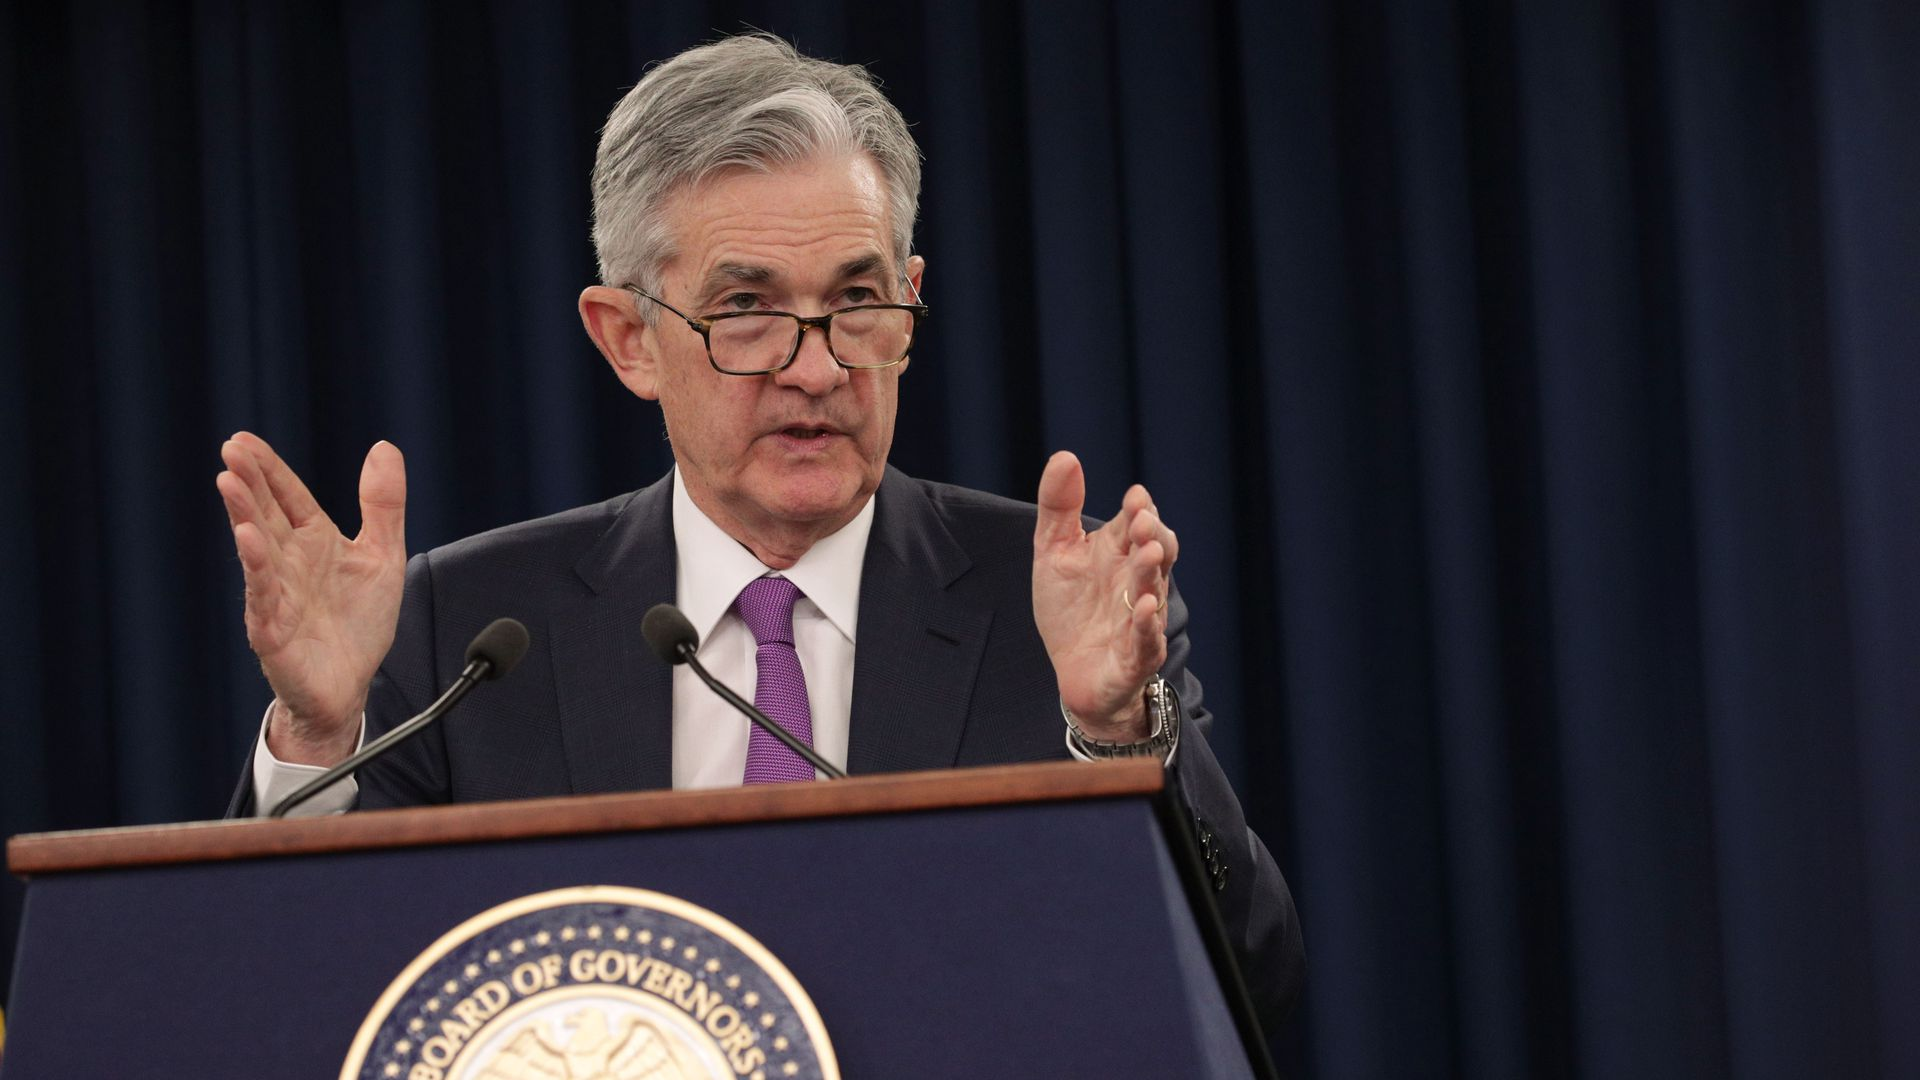 In this image, Federal Reserve Board Chairman Jerome Powell speaks into two microphones from behind a podium.